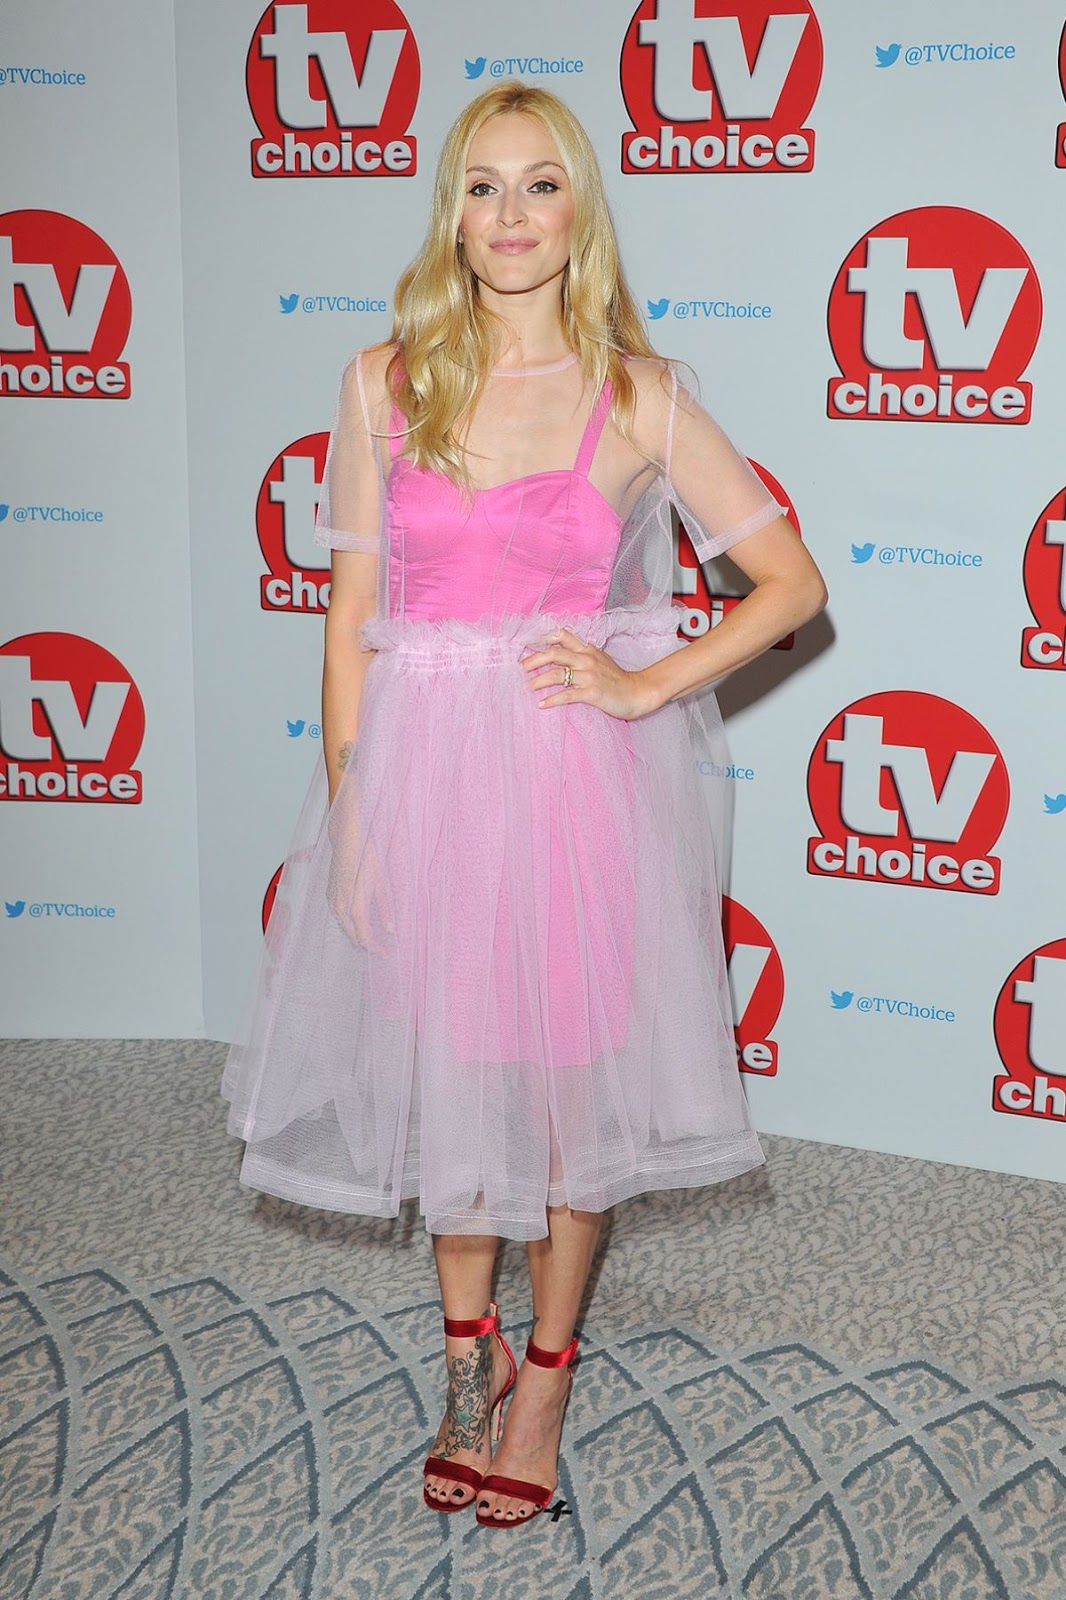 HQ Photos Fearne Cotton At TV Choice Awards In London